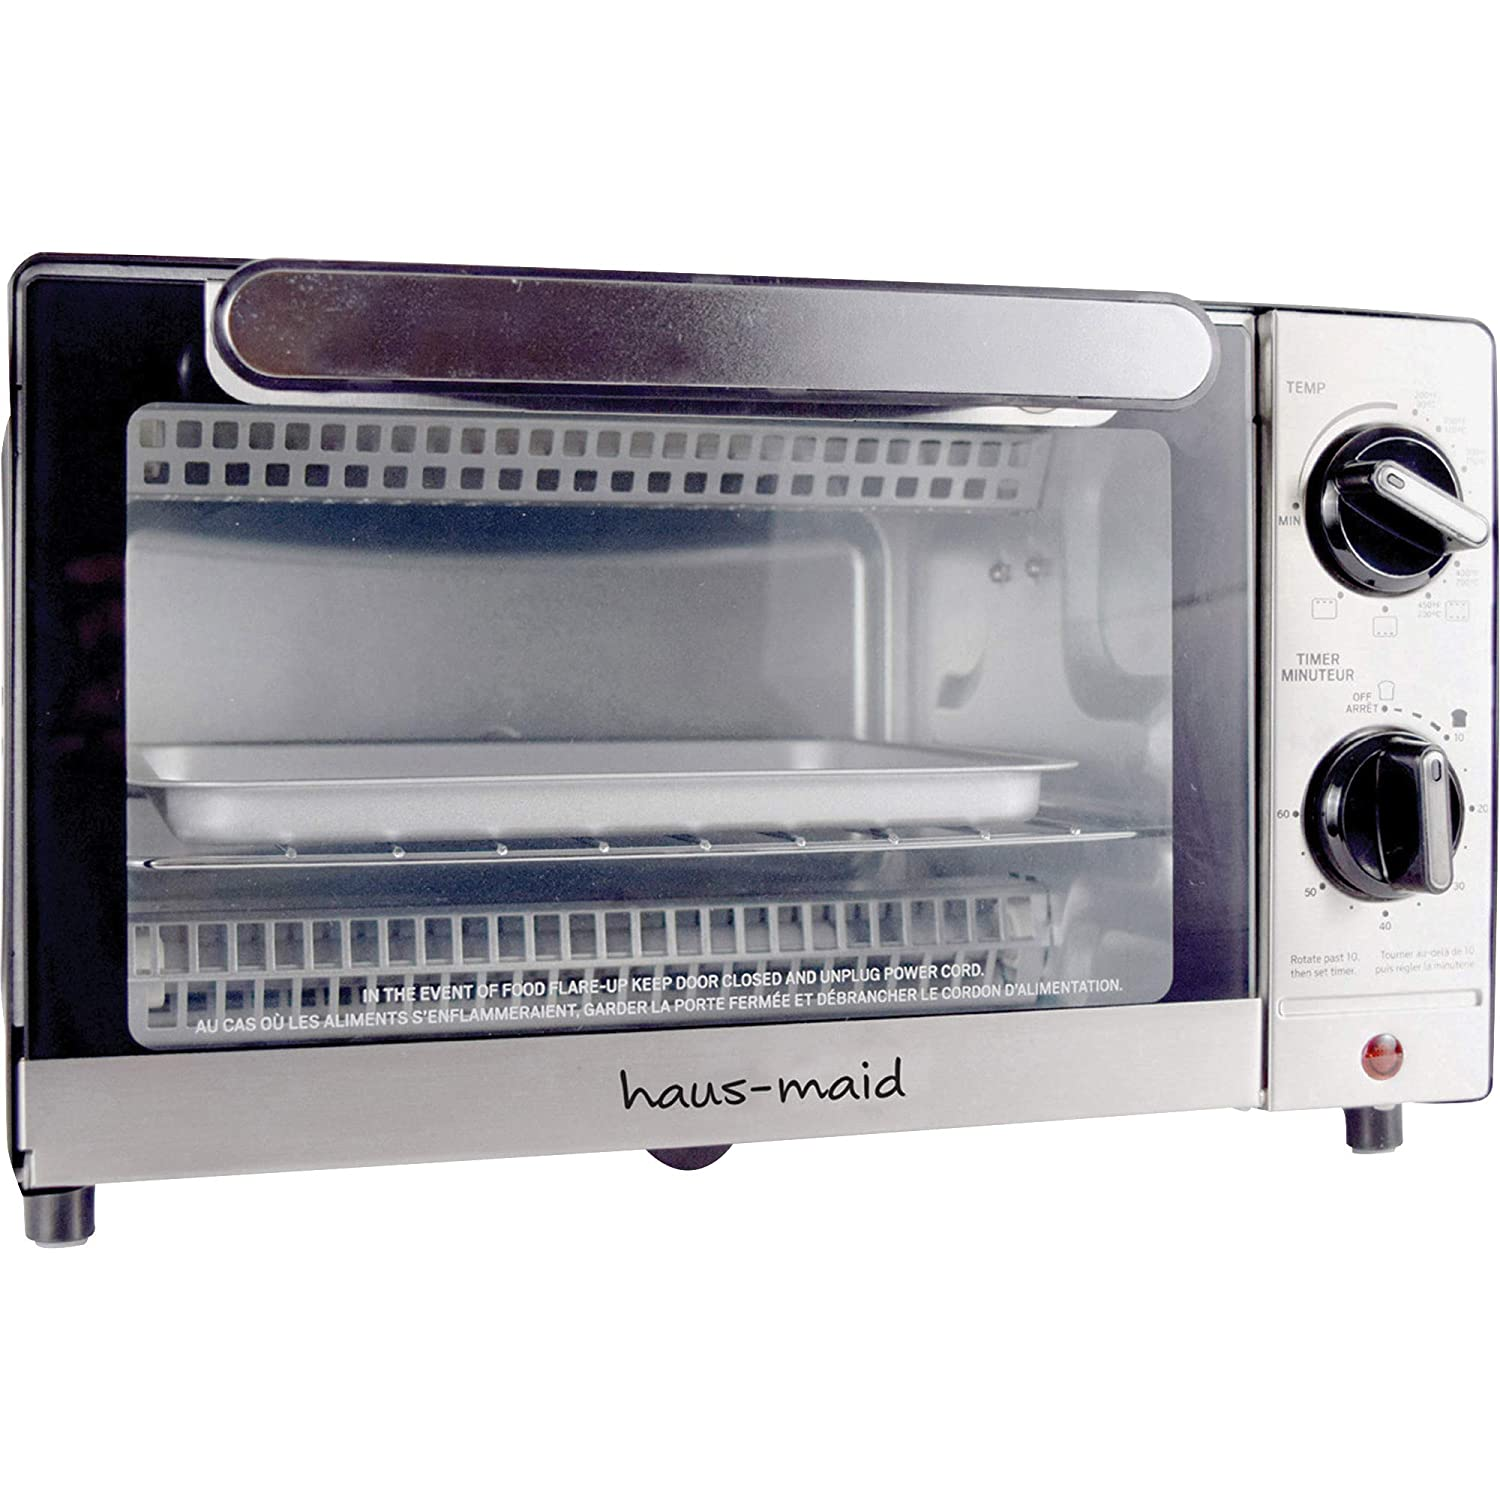 Coffee Pro Haus-Maid Toaster Oven